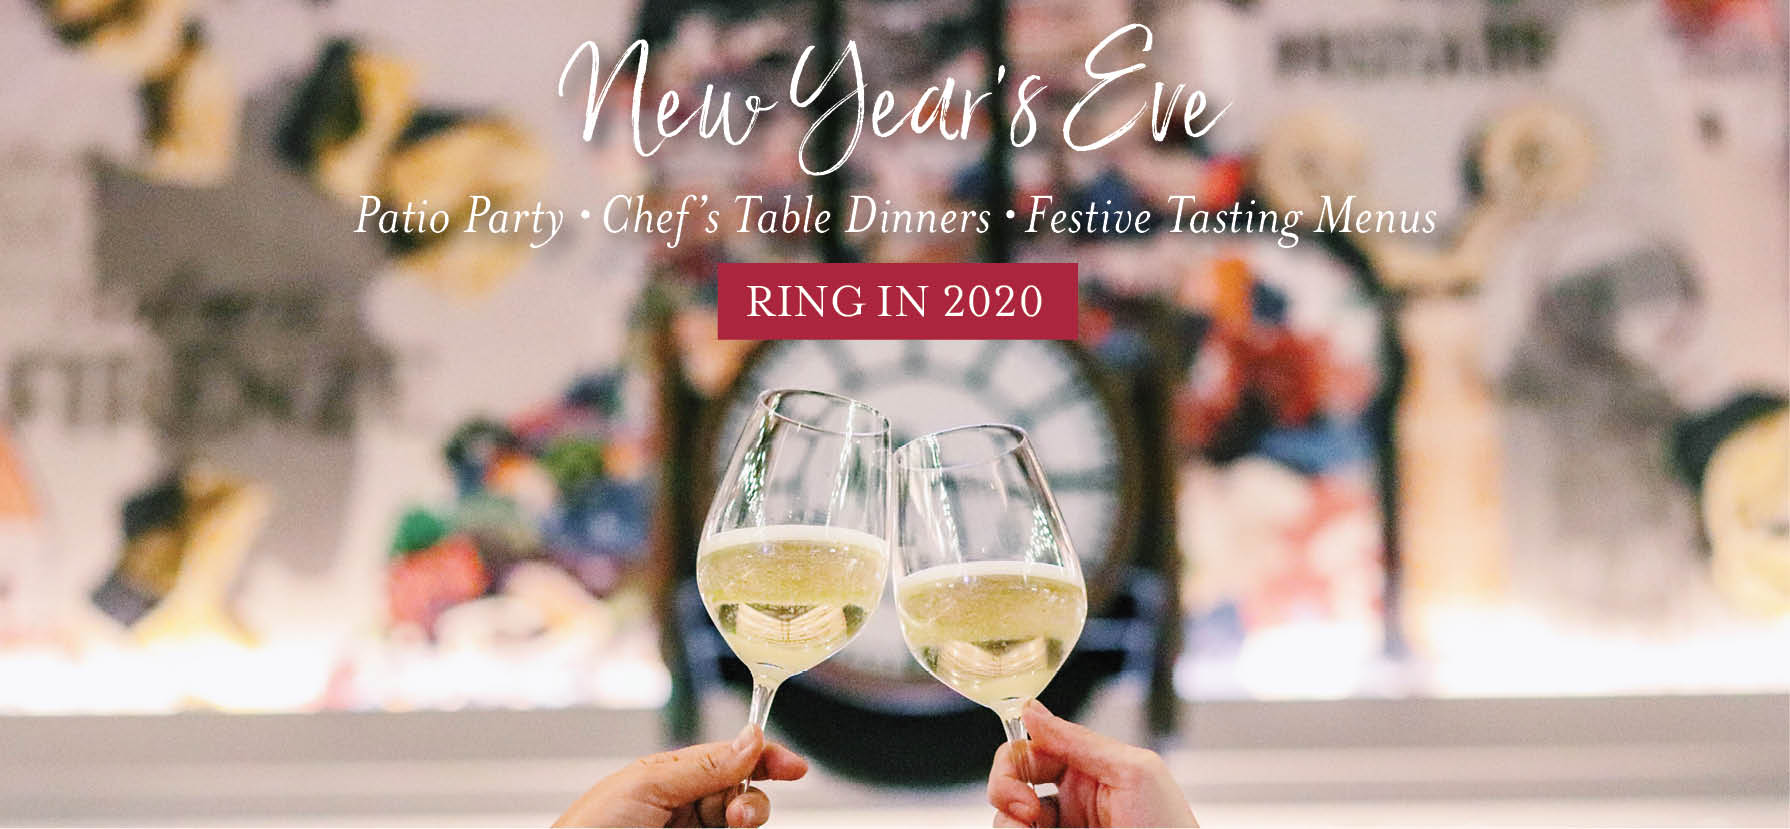 New Year's Eve at Eataly Las Vegas